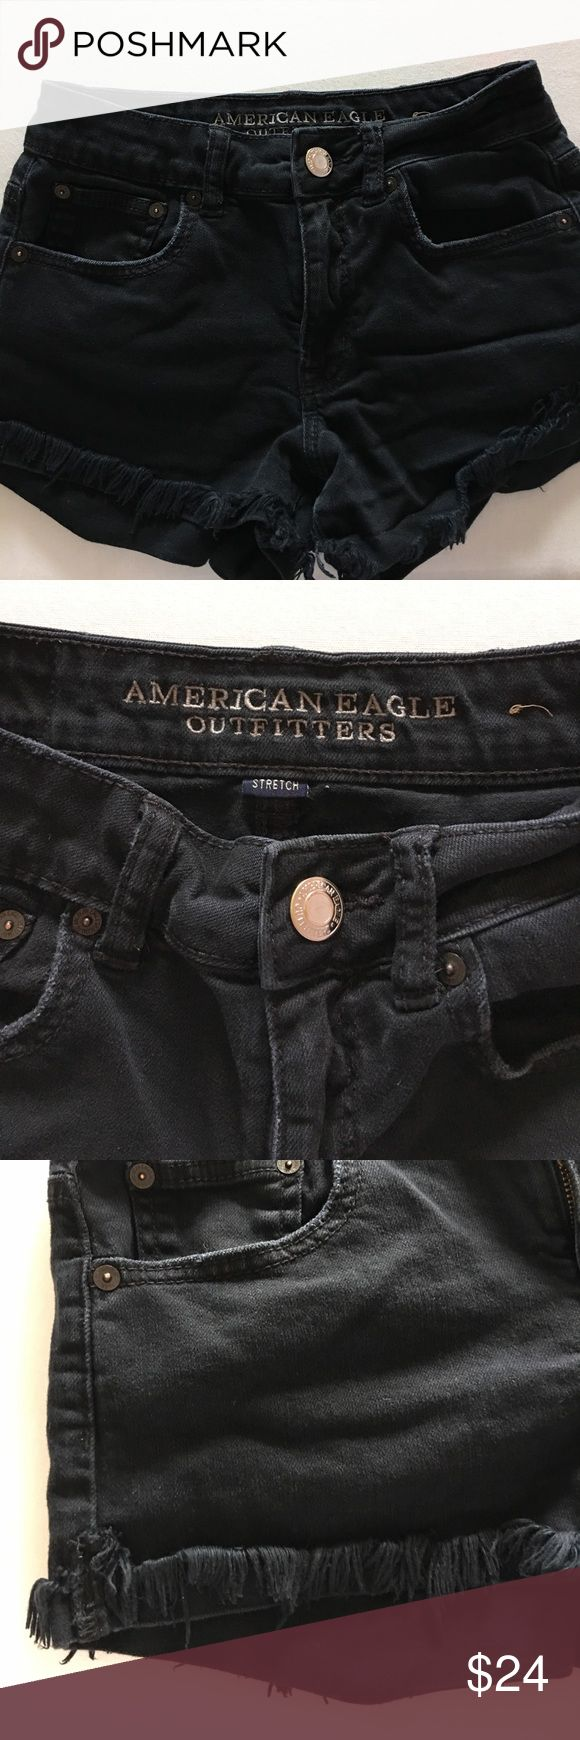 AE OUTFITTERS Black Jean Shorts Black American Eagle Outfitter jean shorts. Distressed legs. American Eagle Outfitters Jeans